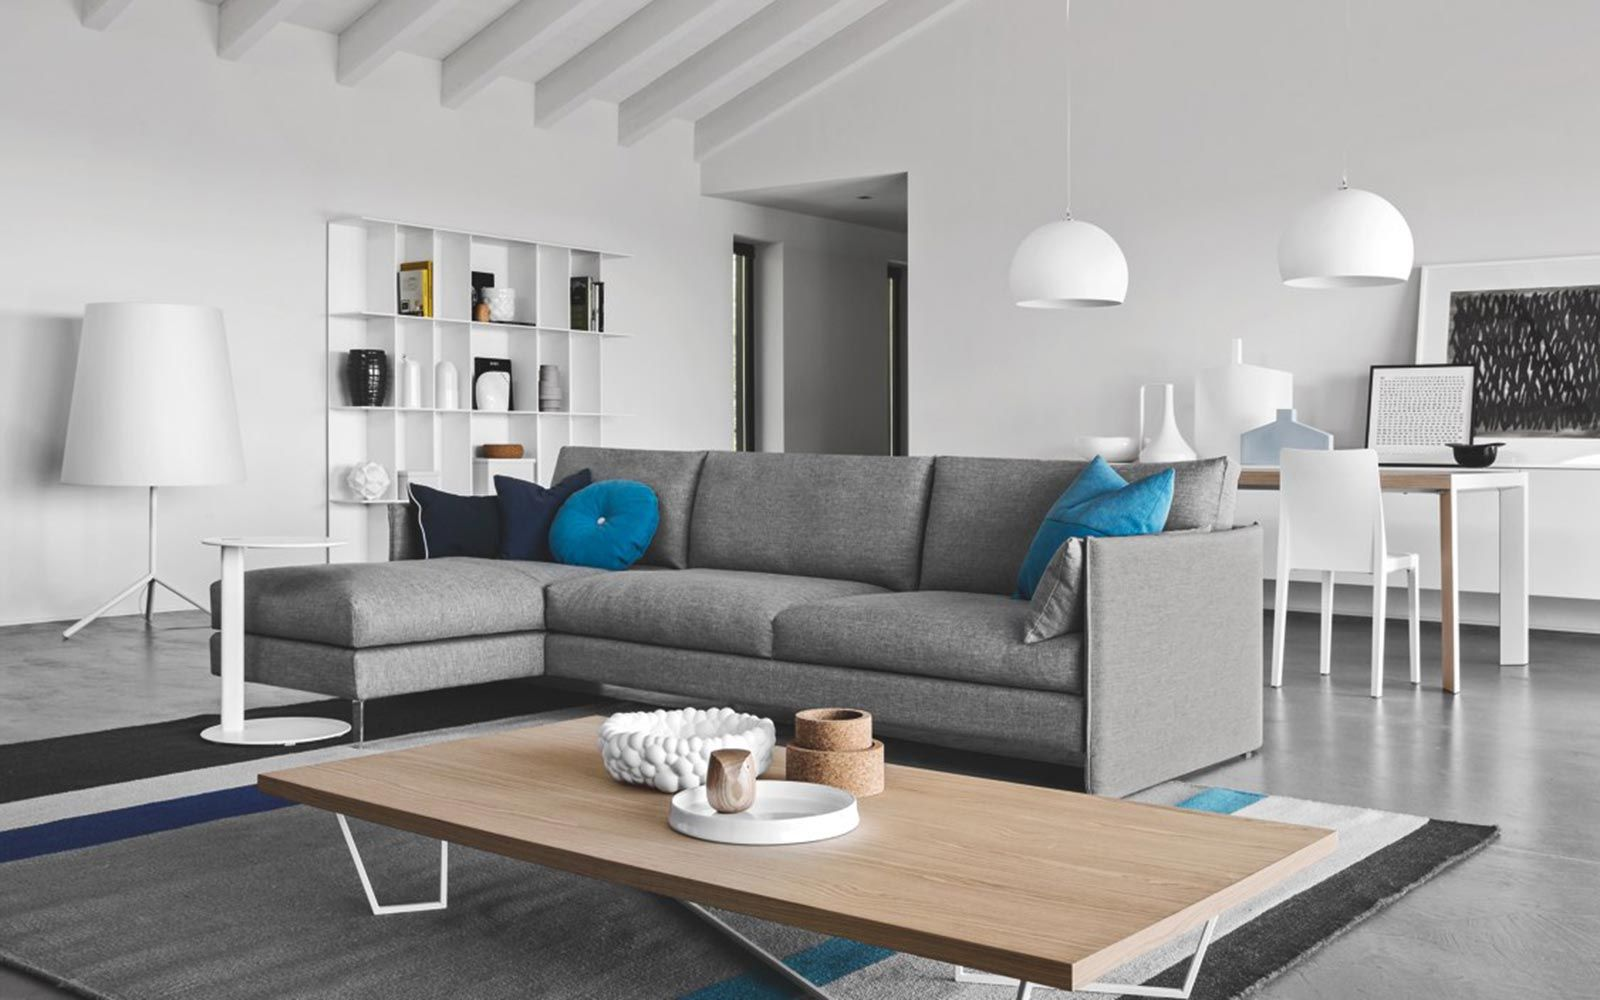 Calligaris Sofas Uk Chaise Brown Faux Leather Sofa Urban Open Base Design Modular By Modern Furniture See More At Albertopavanello Co